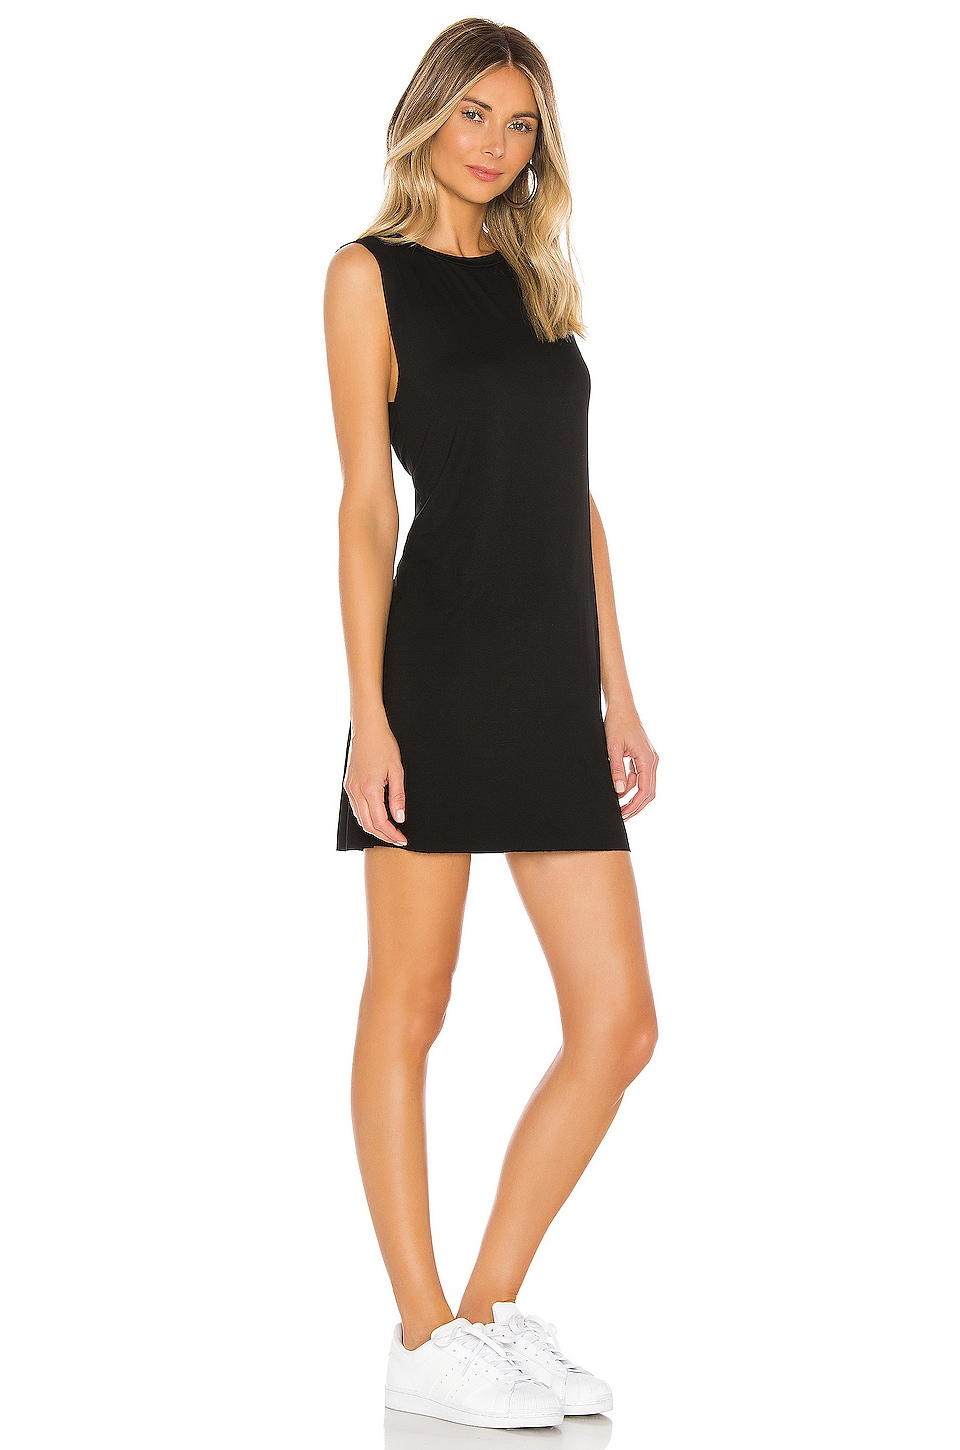 Gilly Sleeveless Dress, view 2, click to view large image.